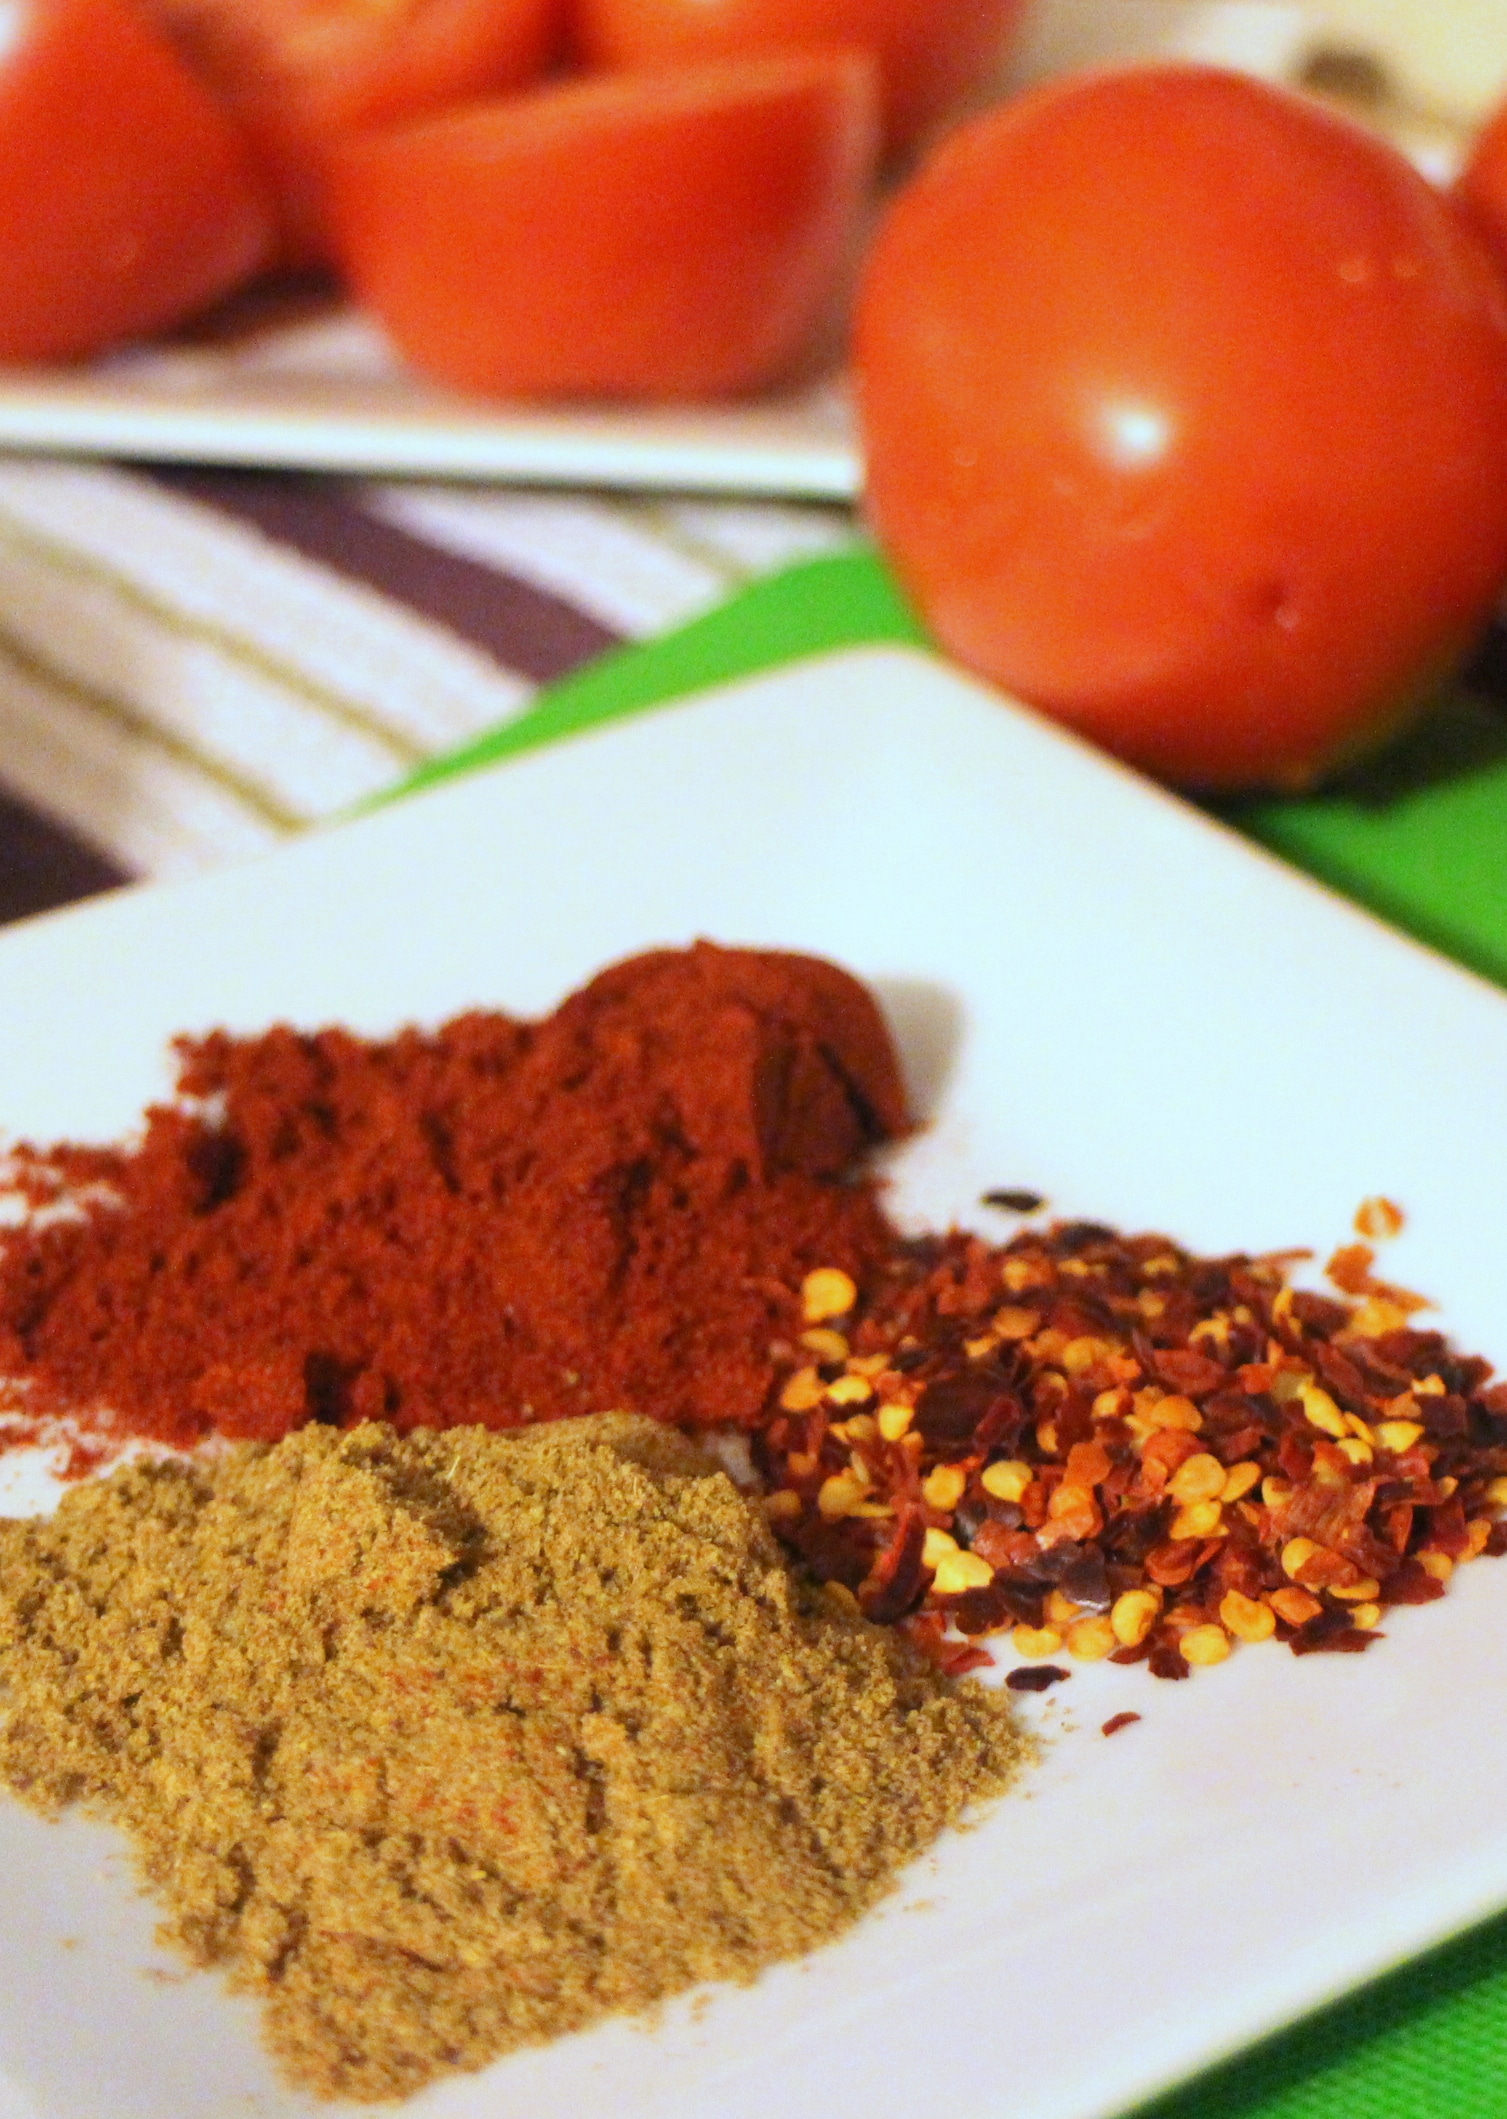 Cumin, Red Chili Flakes and Paprika for Matbucha